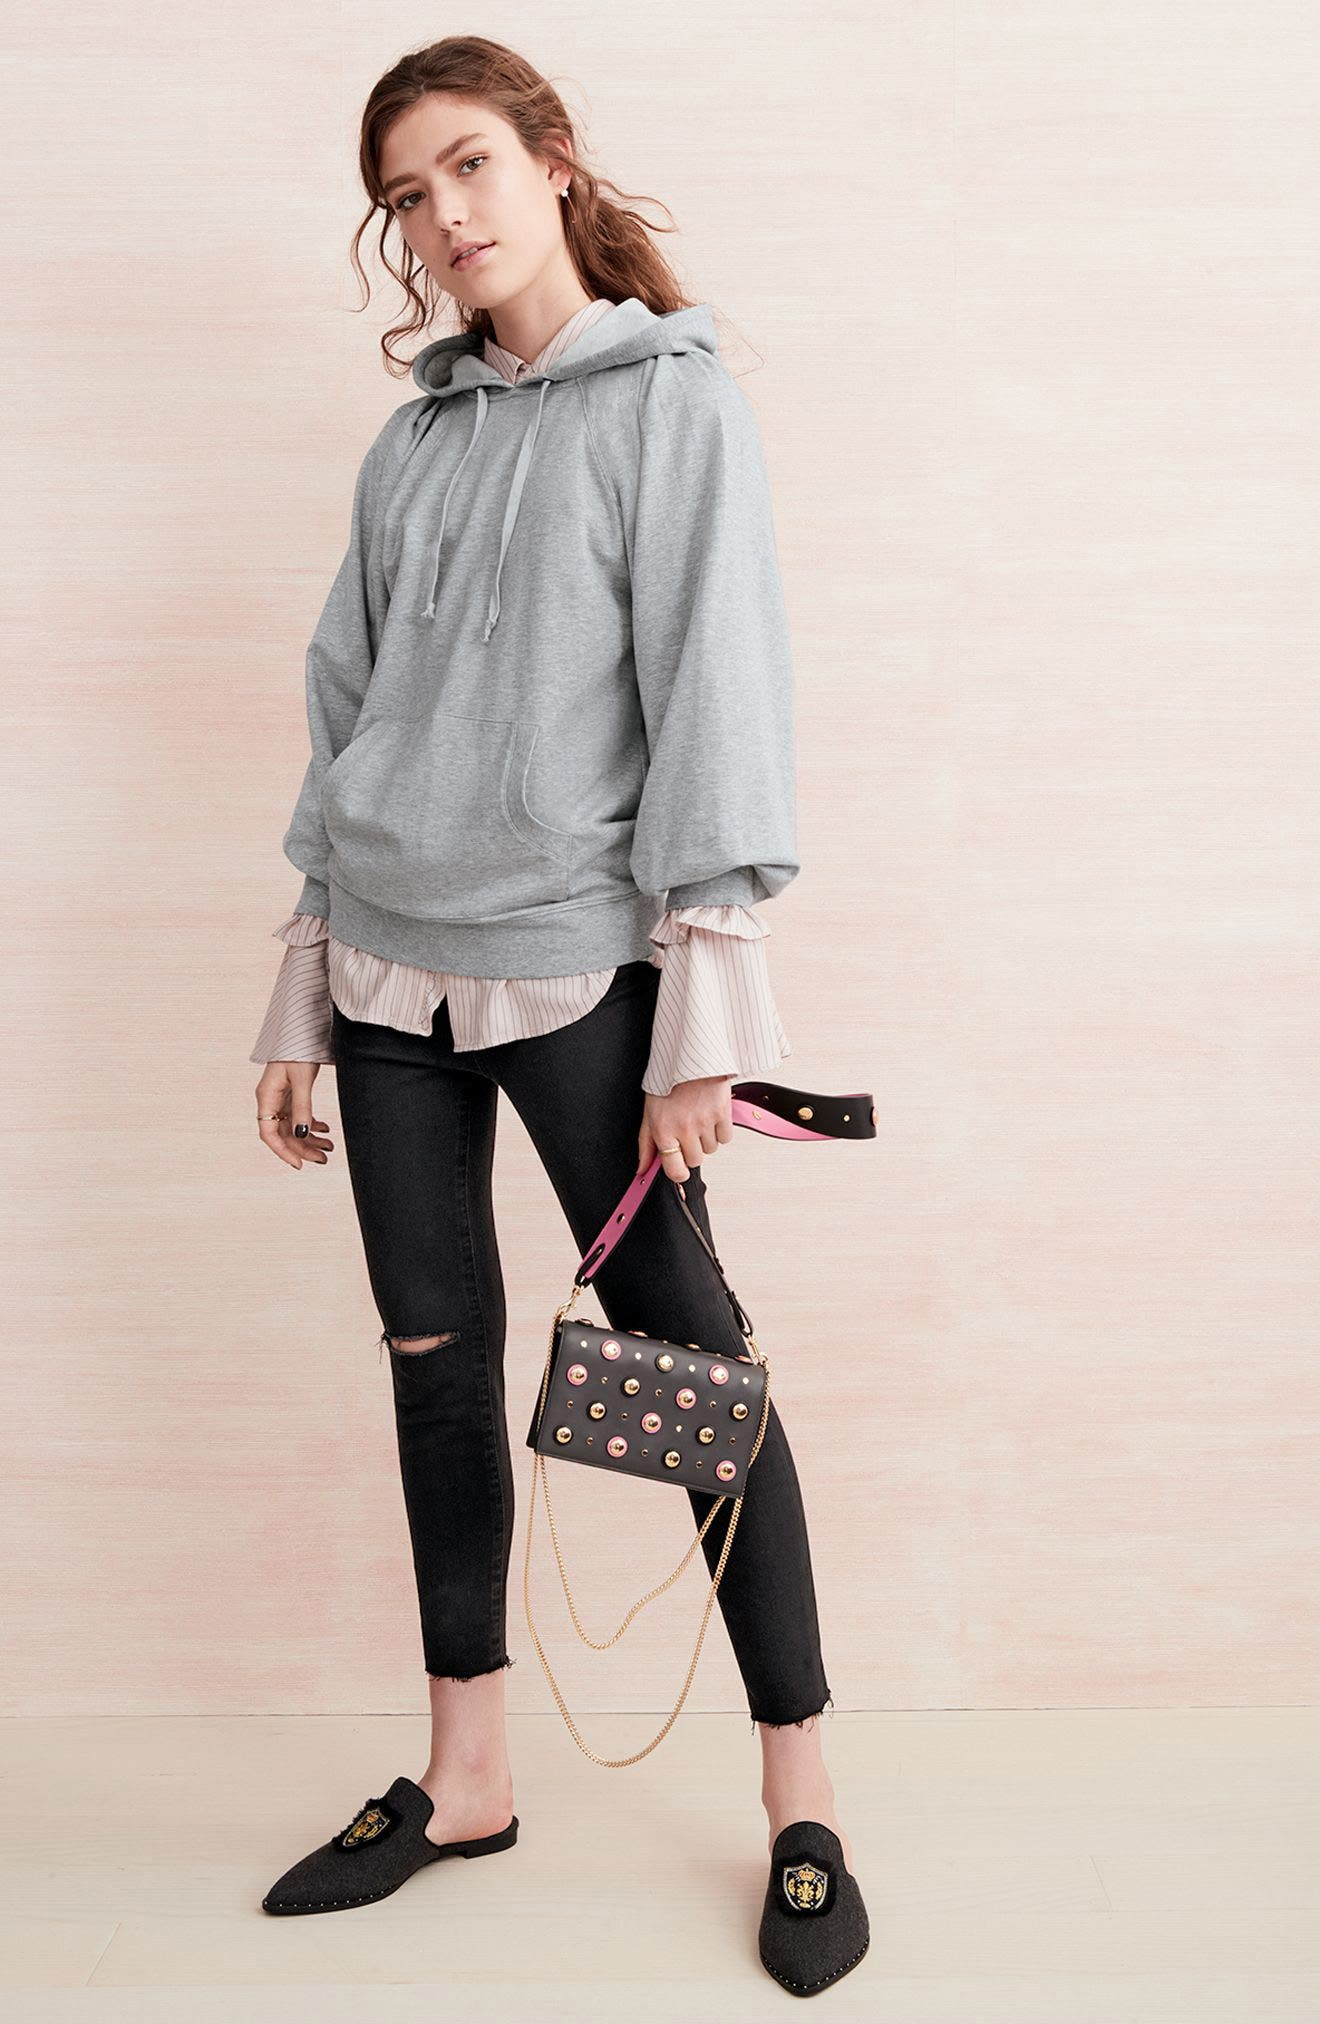 Treasure & Bond Hoodie, Shirt & Jeans Outfit with Accessories